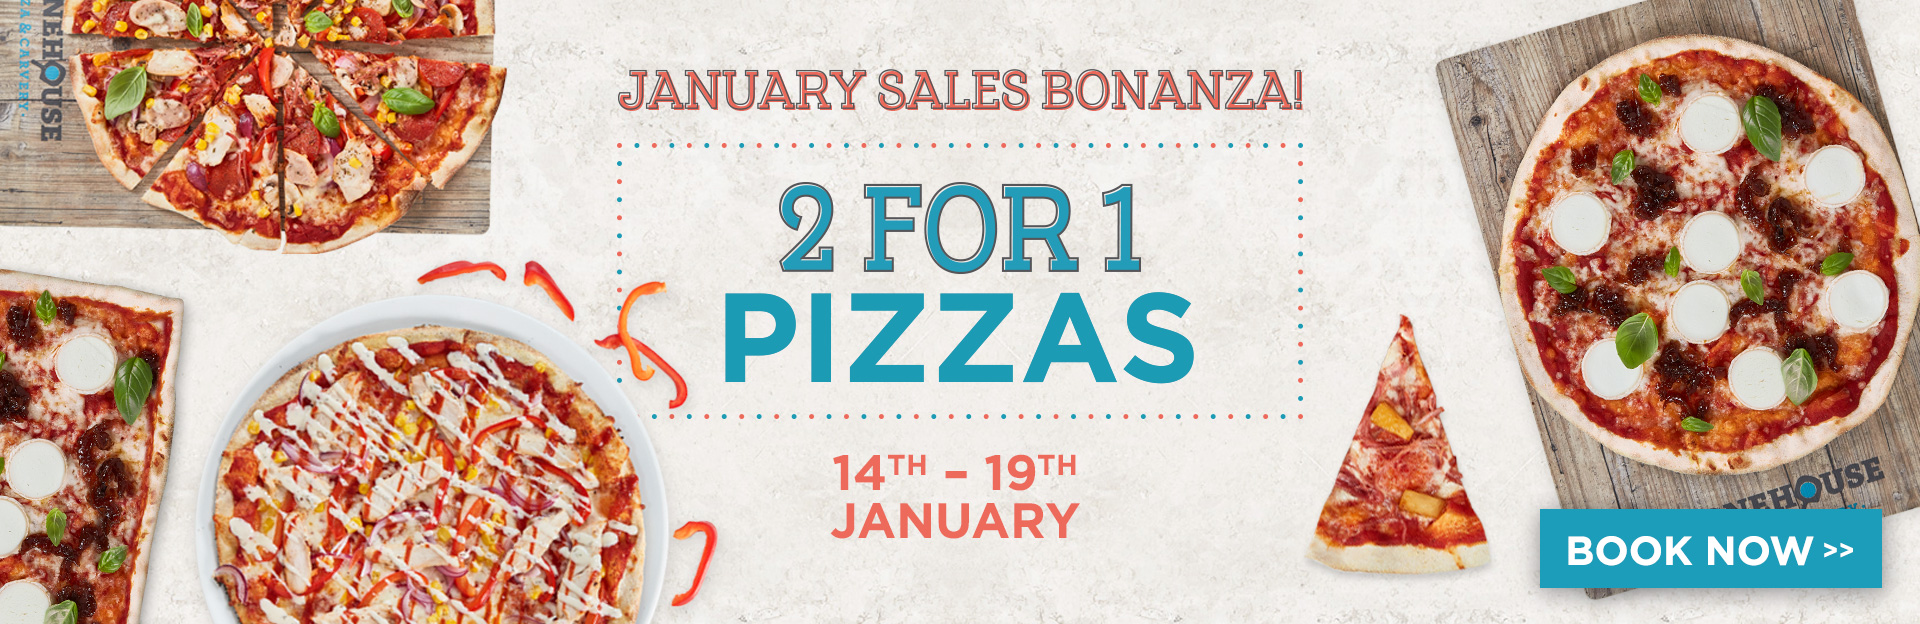 January Sale at The Wilbury